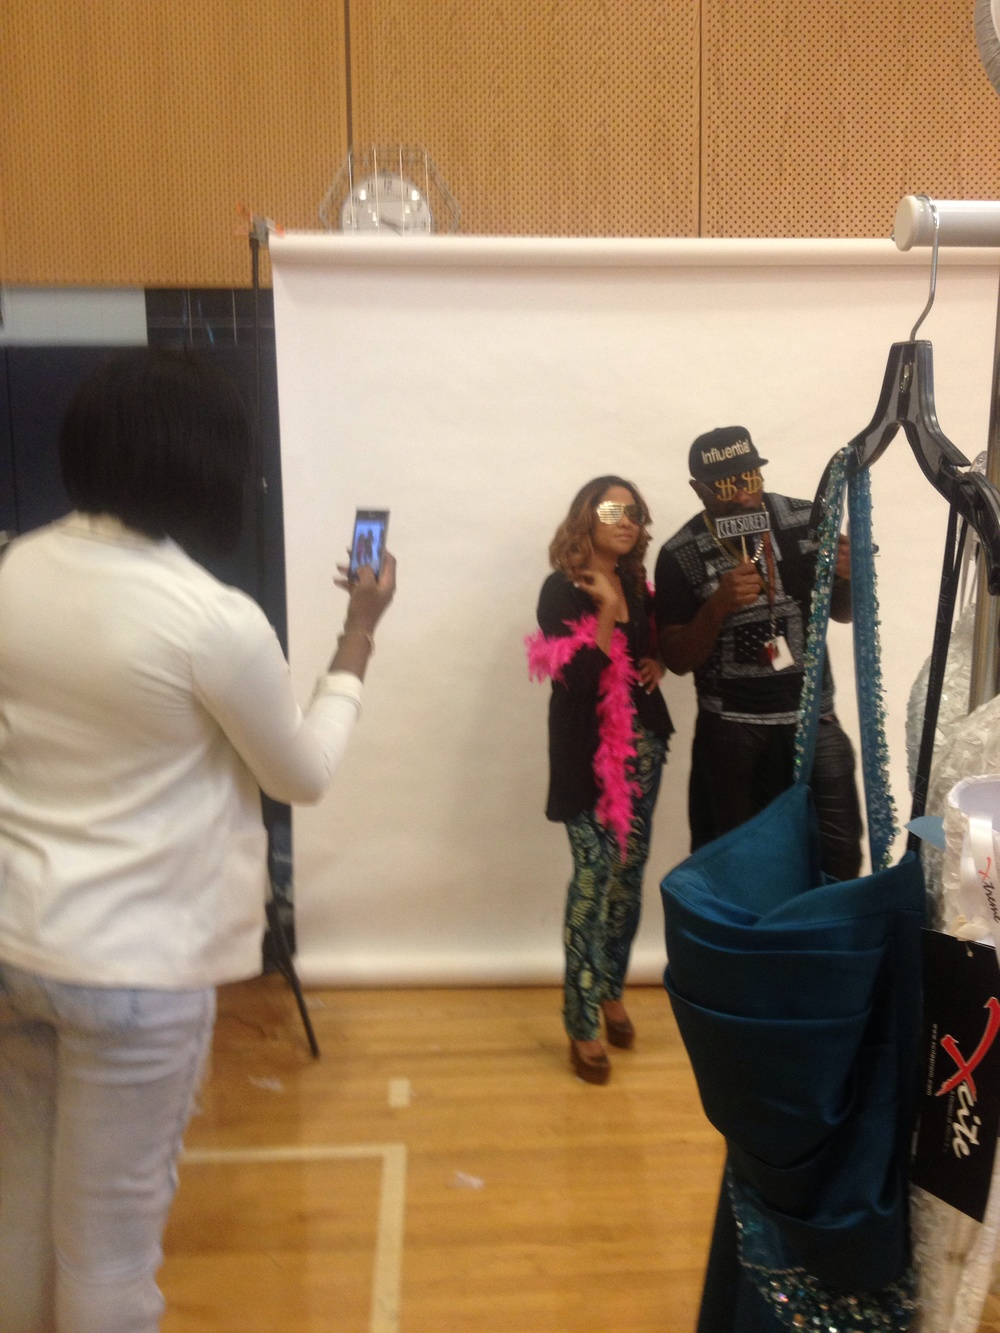 (Angela Yee having fun at the photo booth)